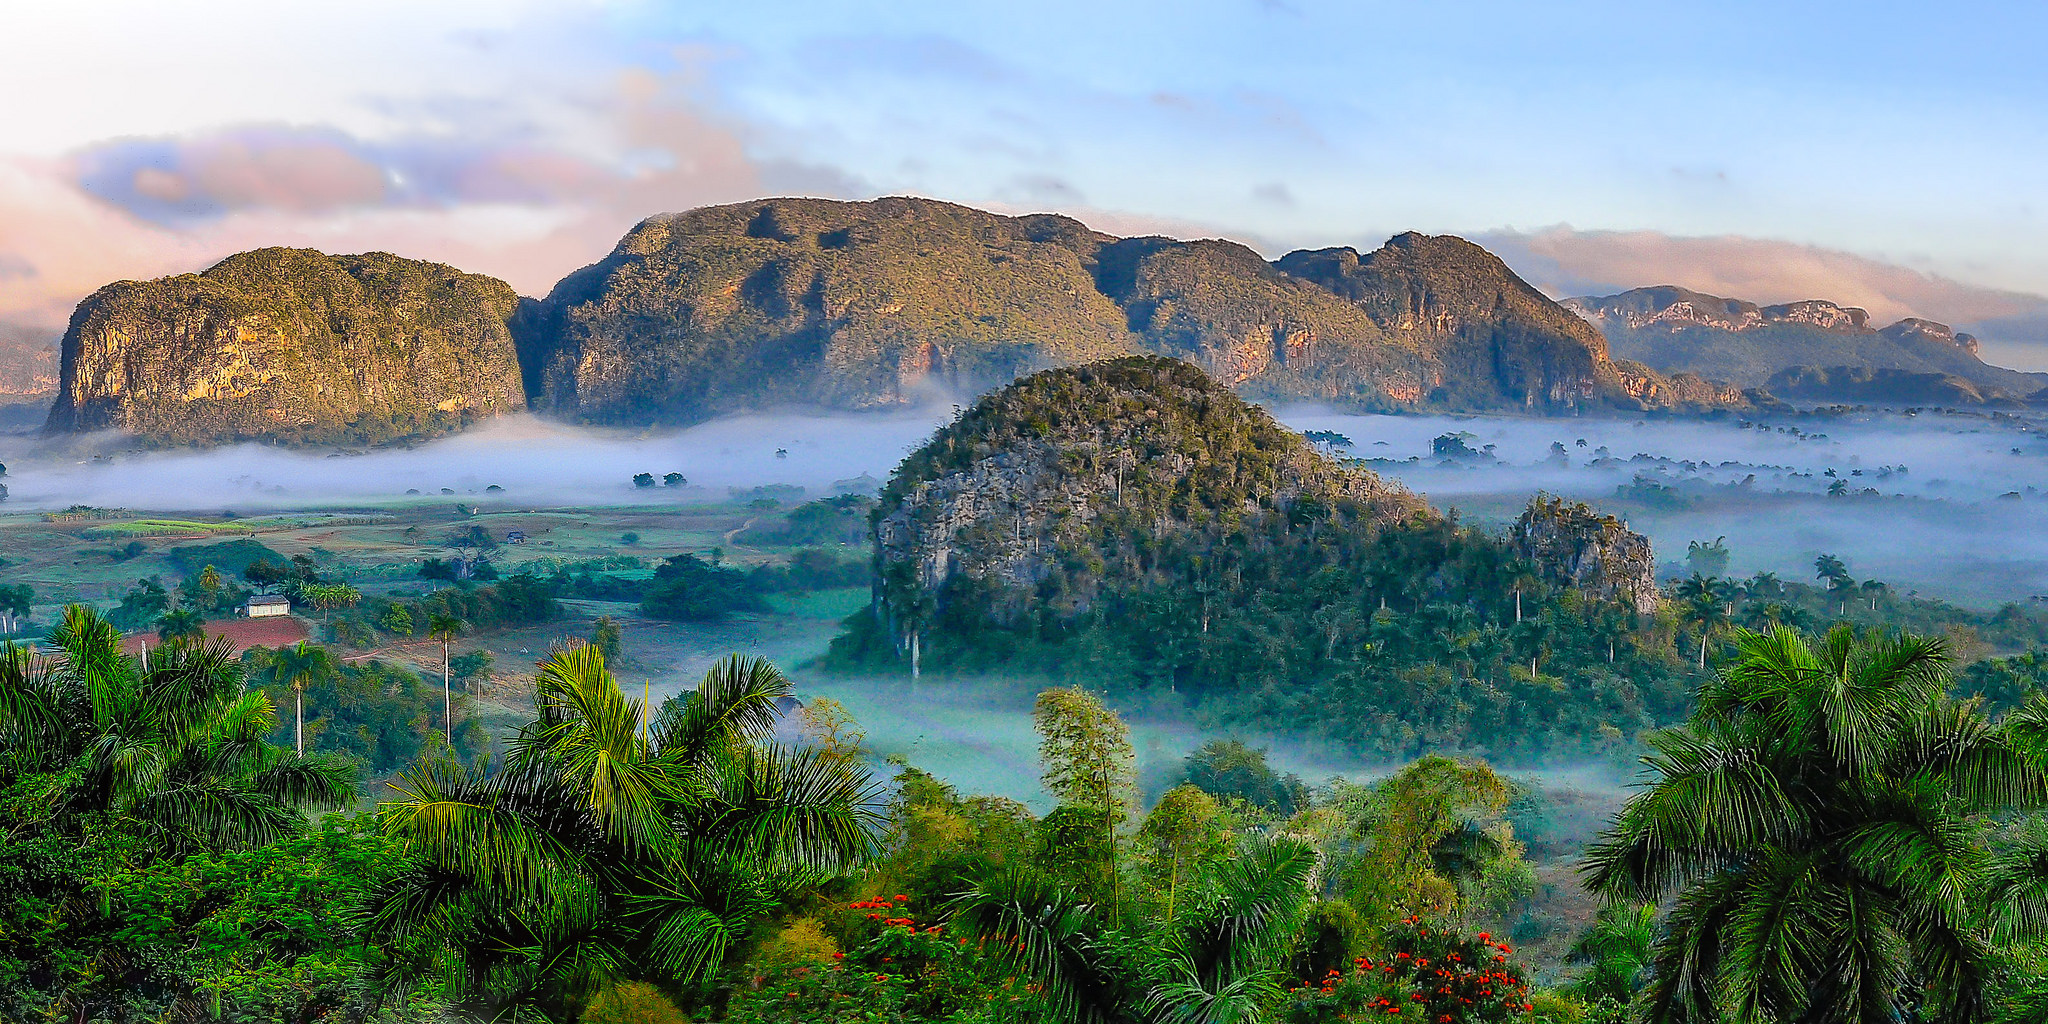 15 Stunning Photographs Of Cuba That Will Make You Book A